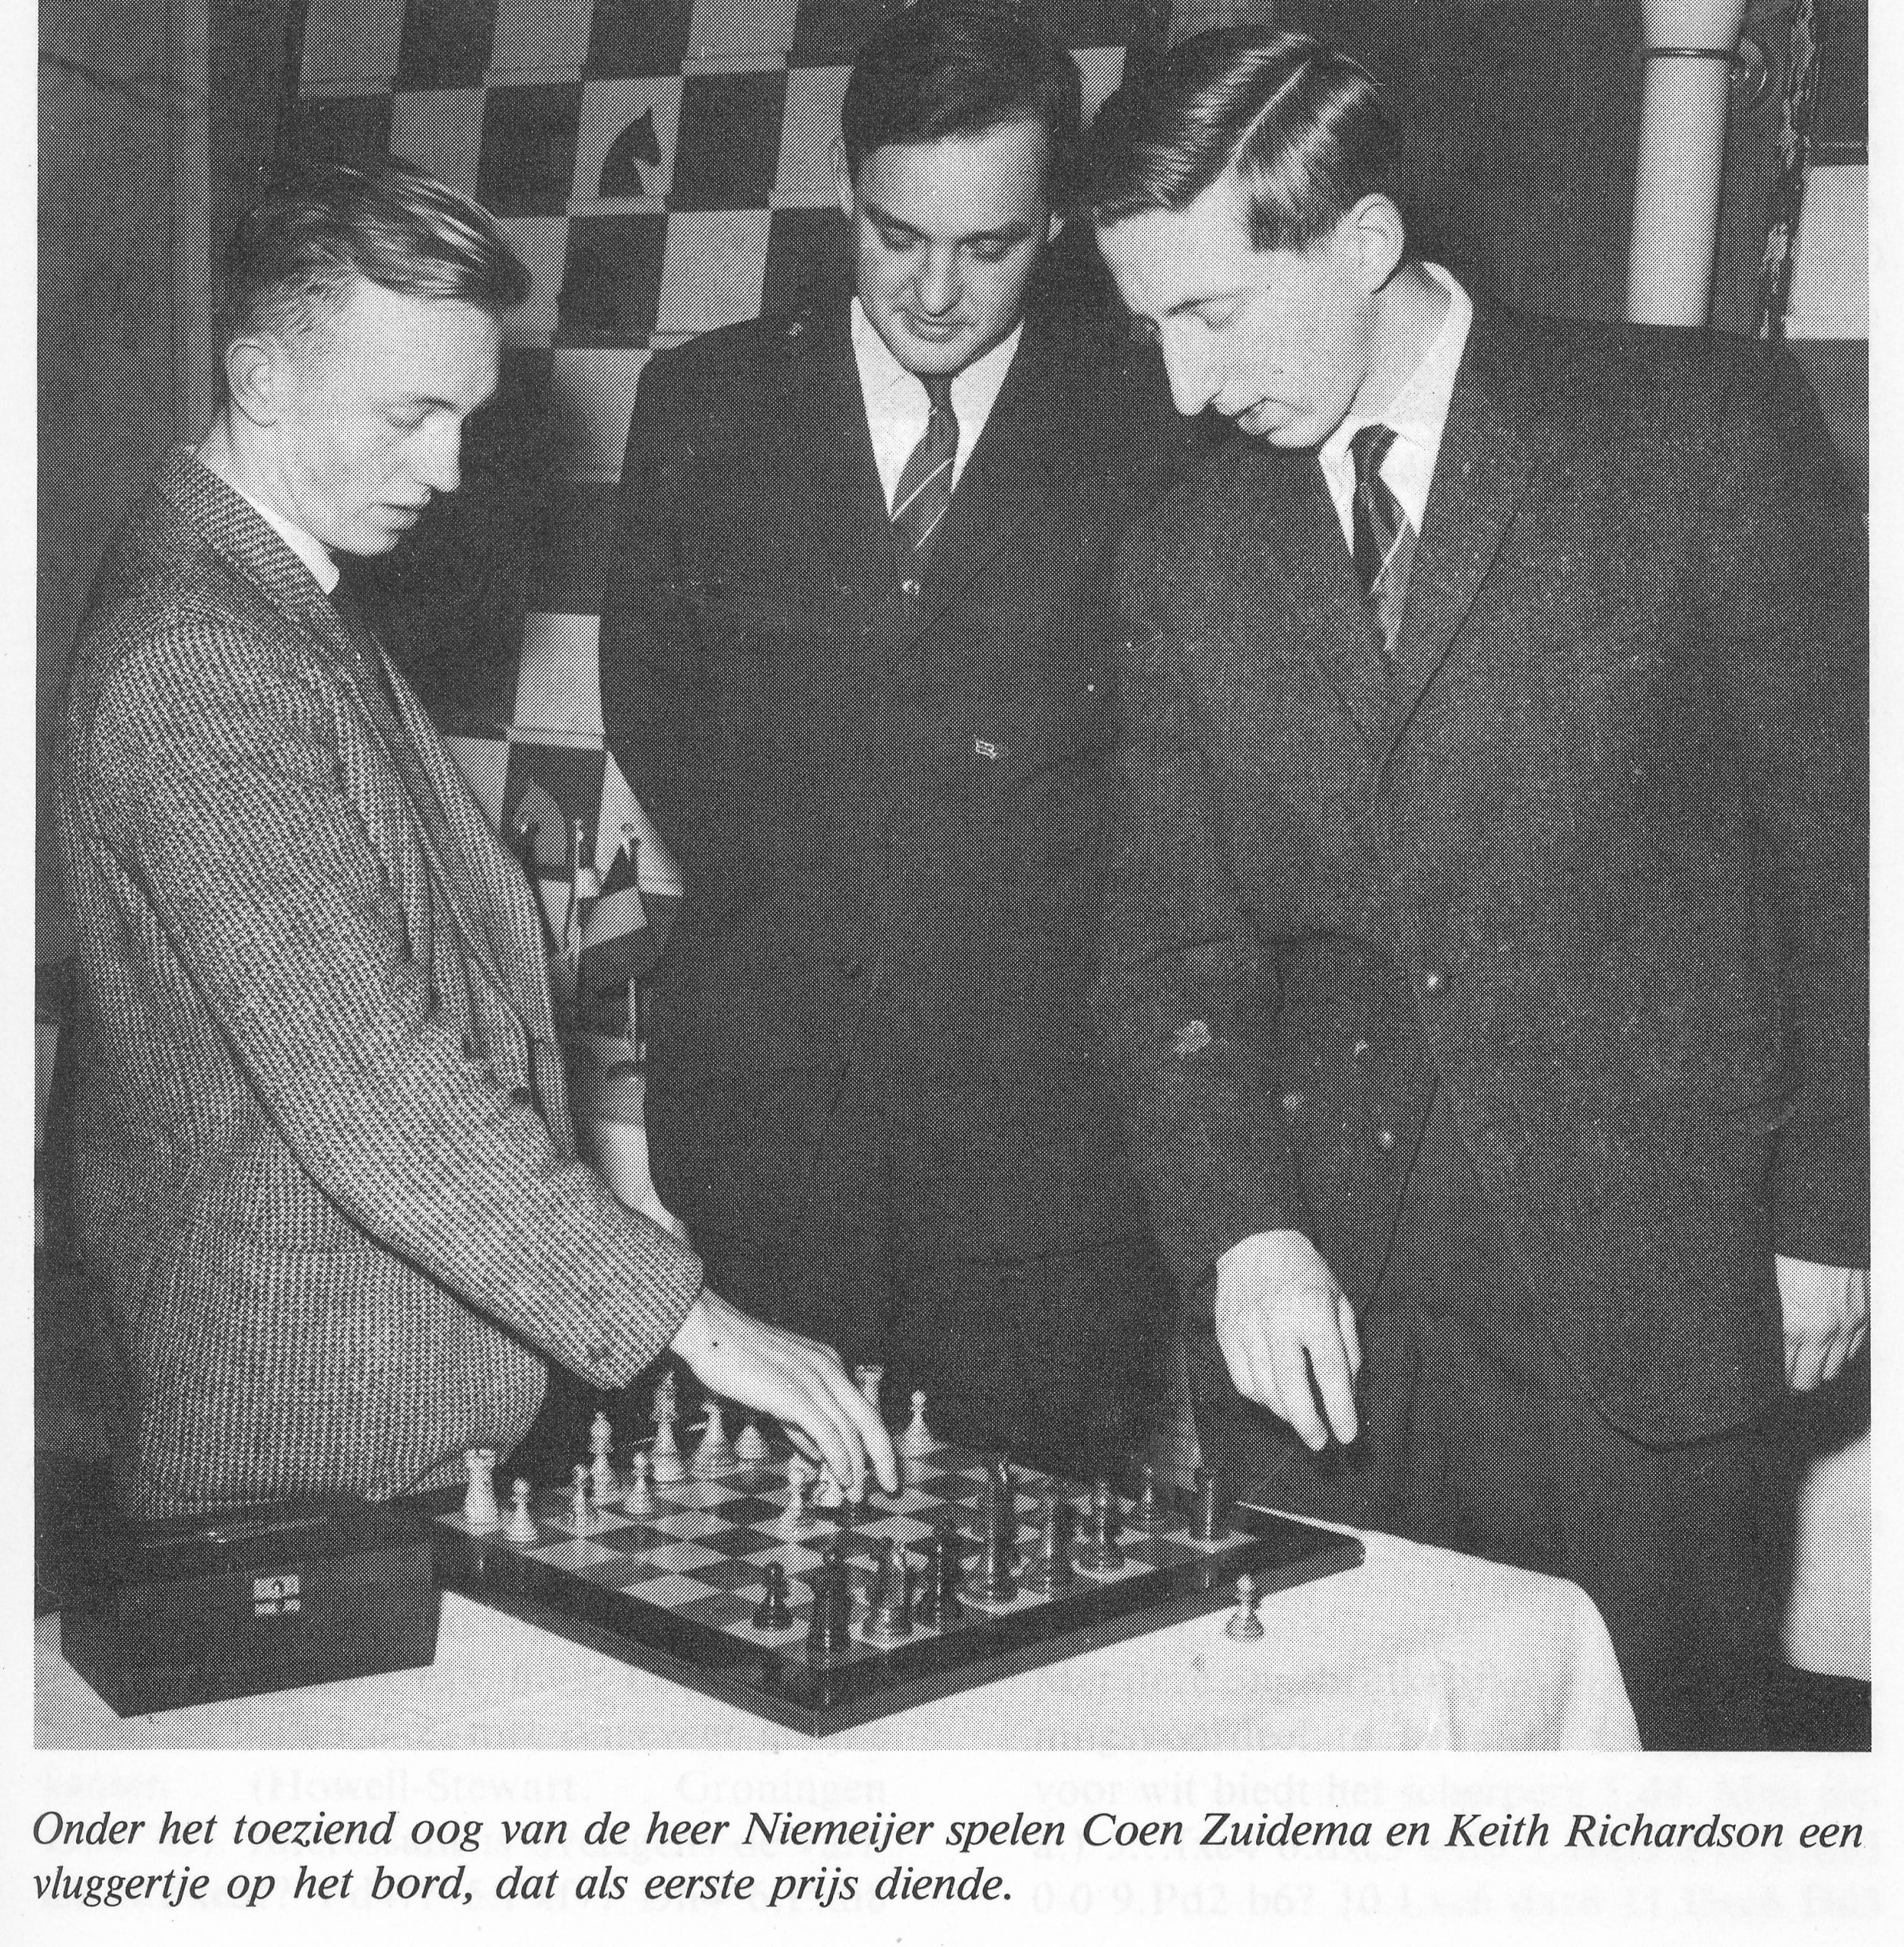 Under the watchful eye of Mr. Niemeijer, Coen Zuidema and Keith Richardson play a quickie on the board, which served as an honorary prize. Source : Groningen 25 Jaar Europees Schaak Internationale Toernooien 1963 -1987, ISBN 90 9001 500 0